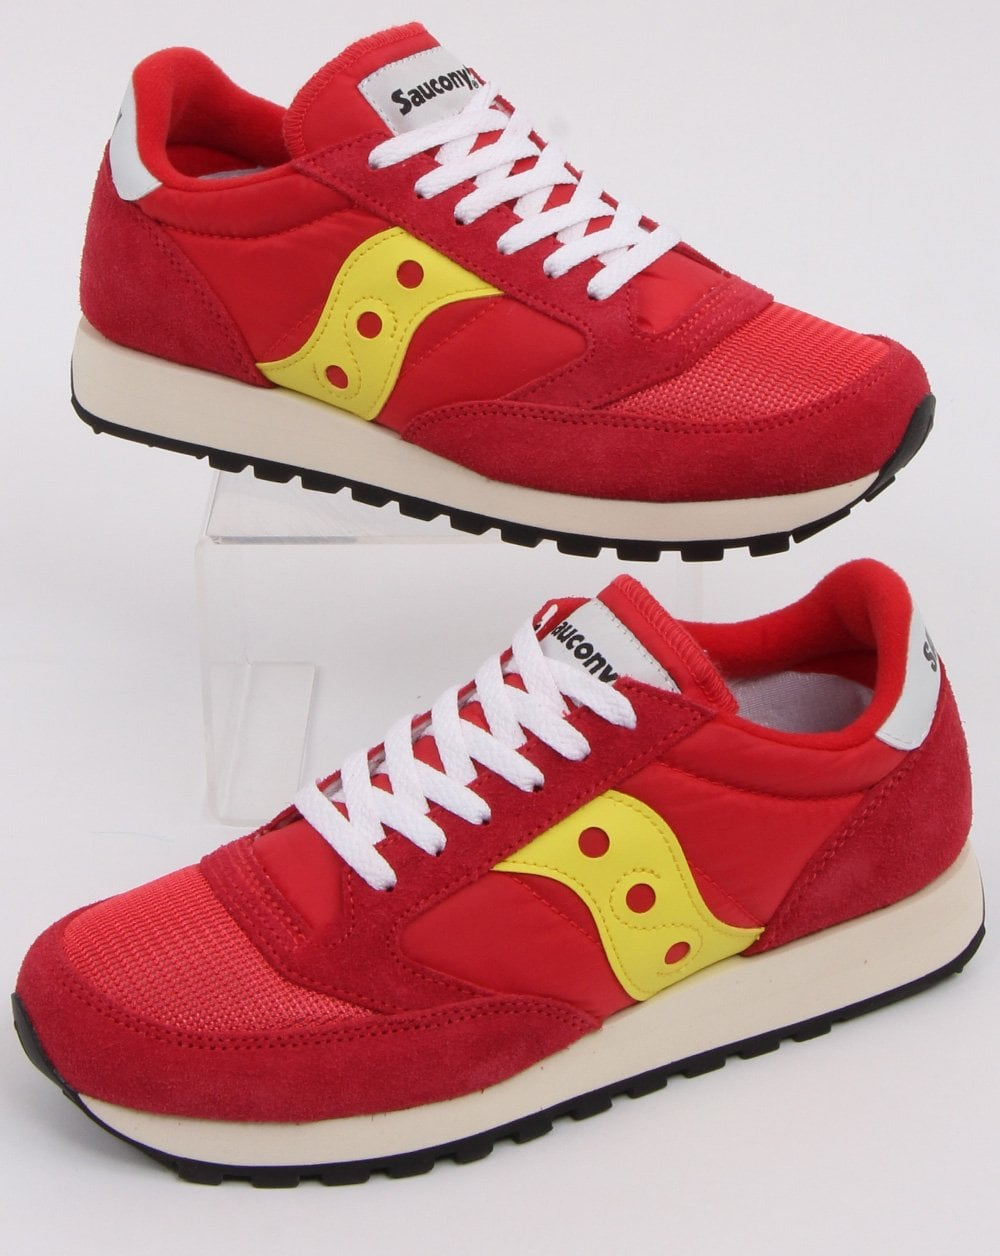 Jazz Redyellow80s Classics Casual Saucony Vintage Trainers vmnwN80O